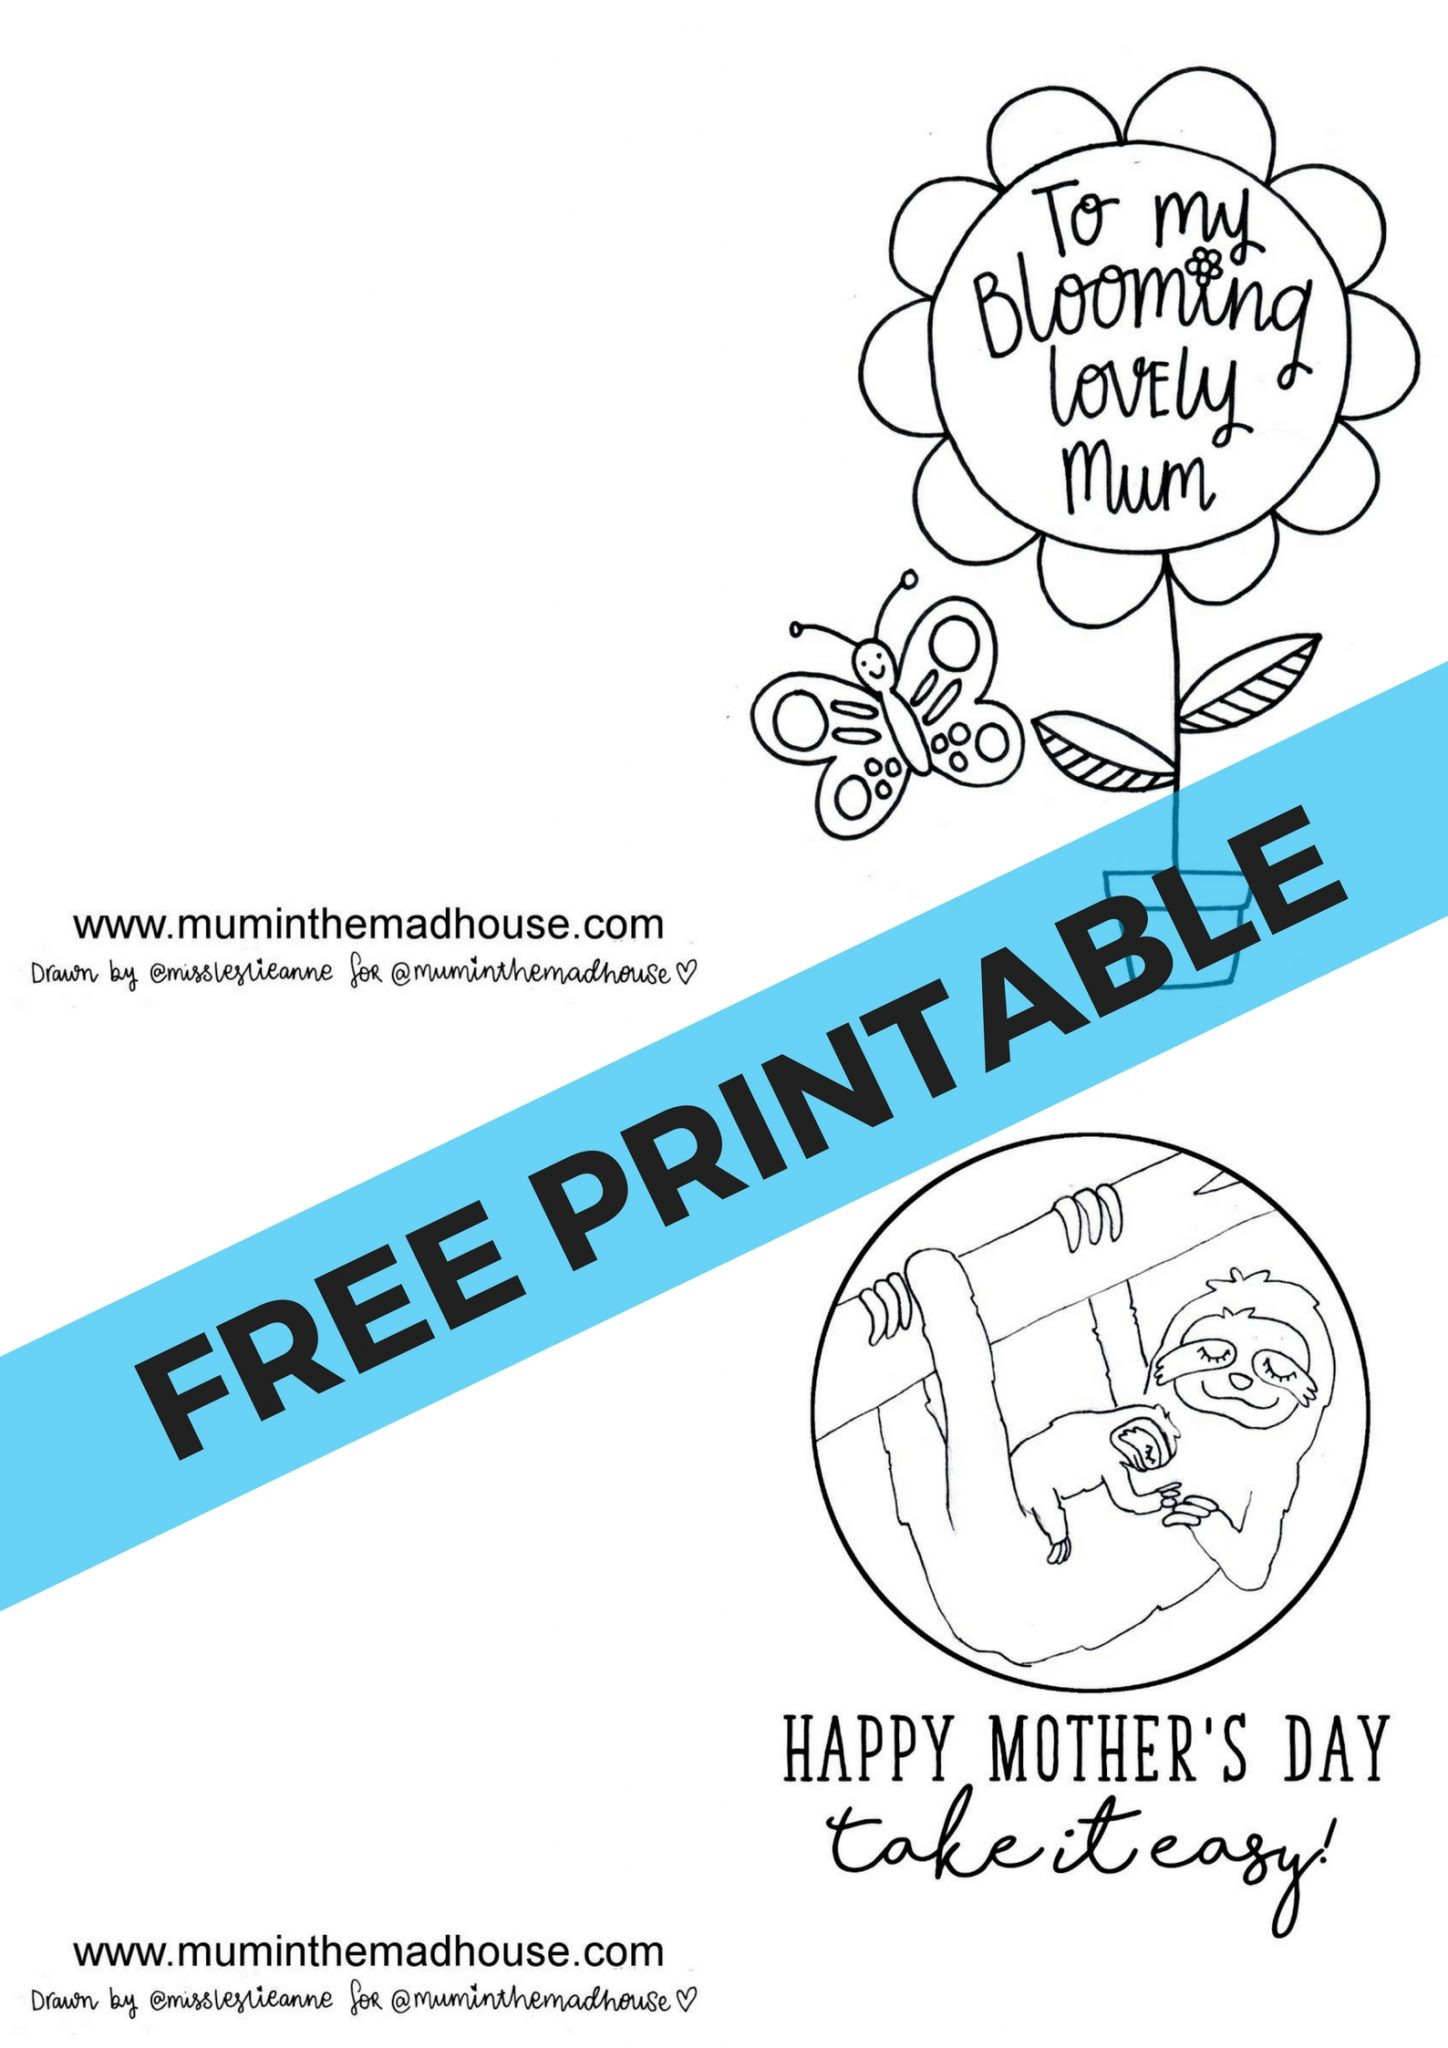 photograph regarding Printable Mothers Day Cards to Color named Totally free Printable Moms Working day Playing cards in the direction of Shade - Mum Inside The